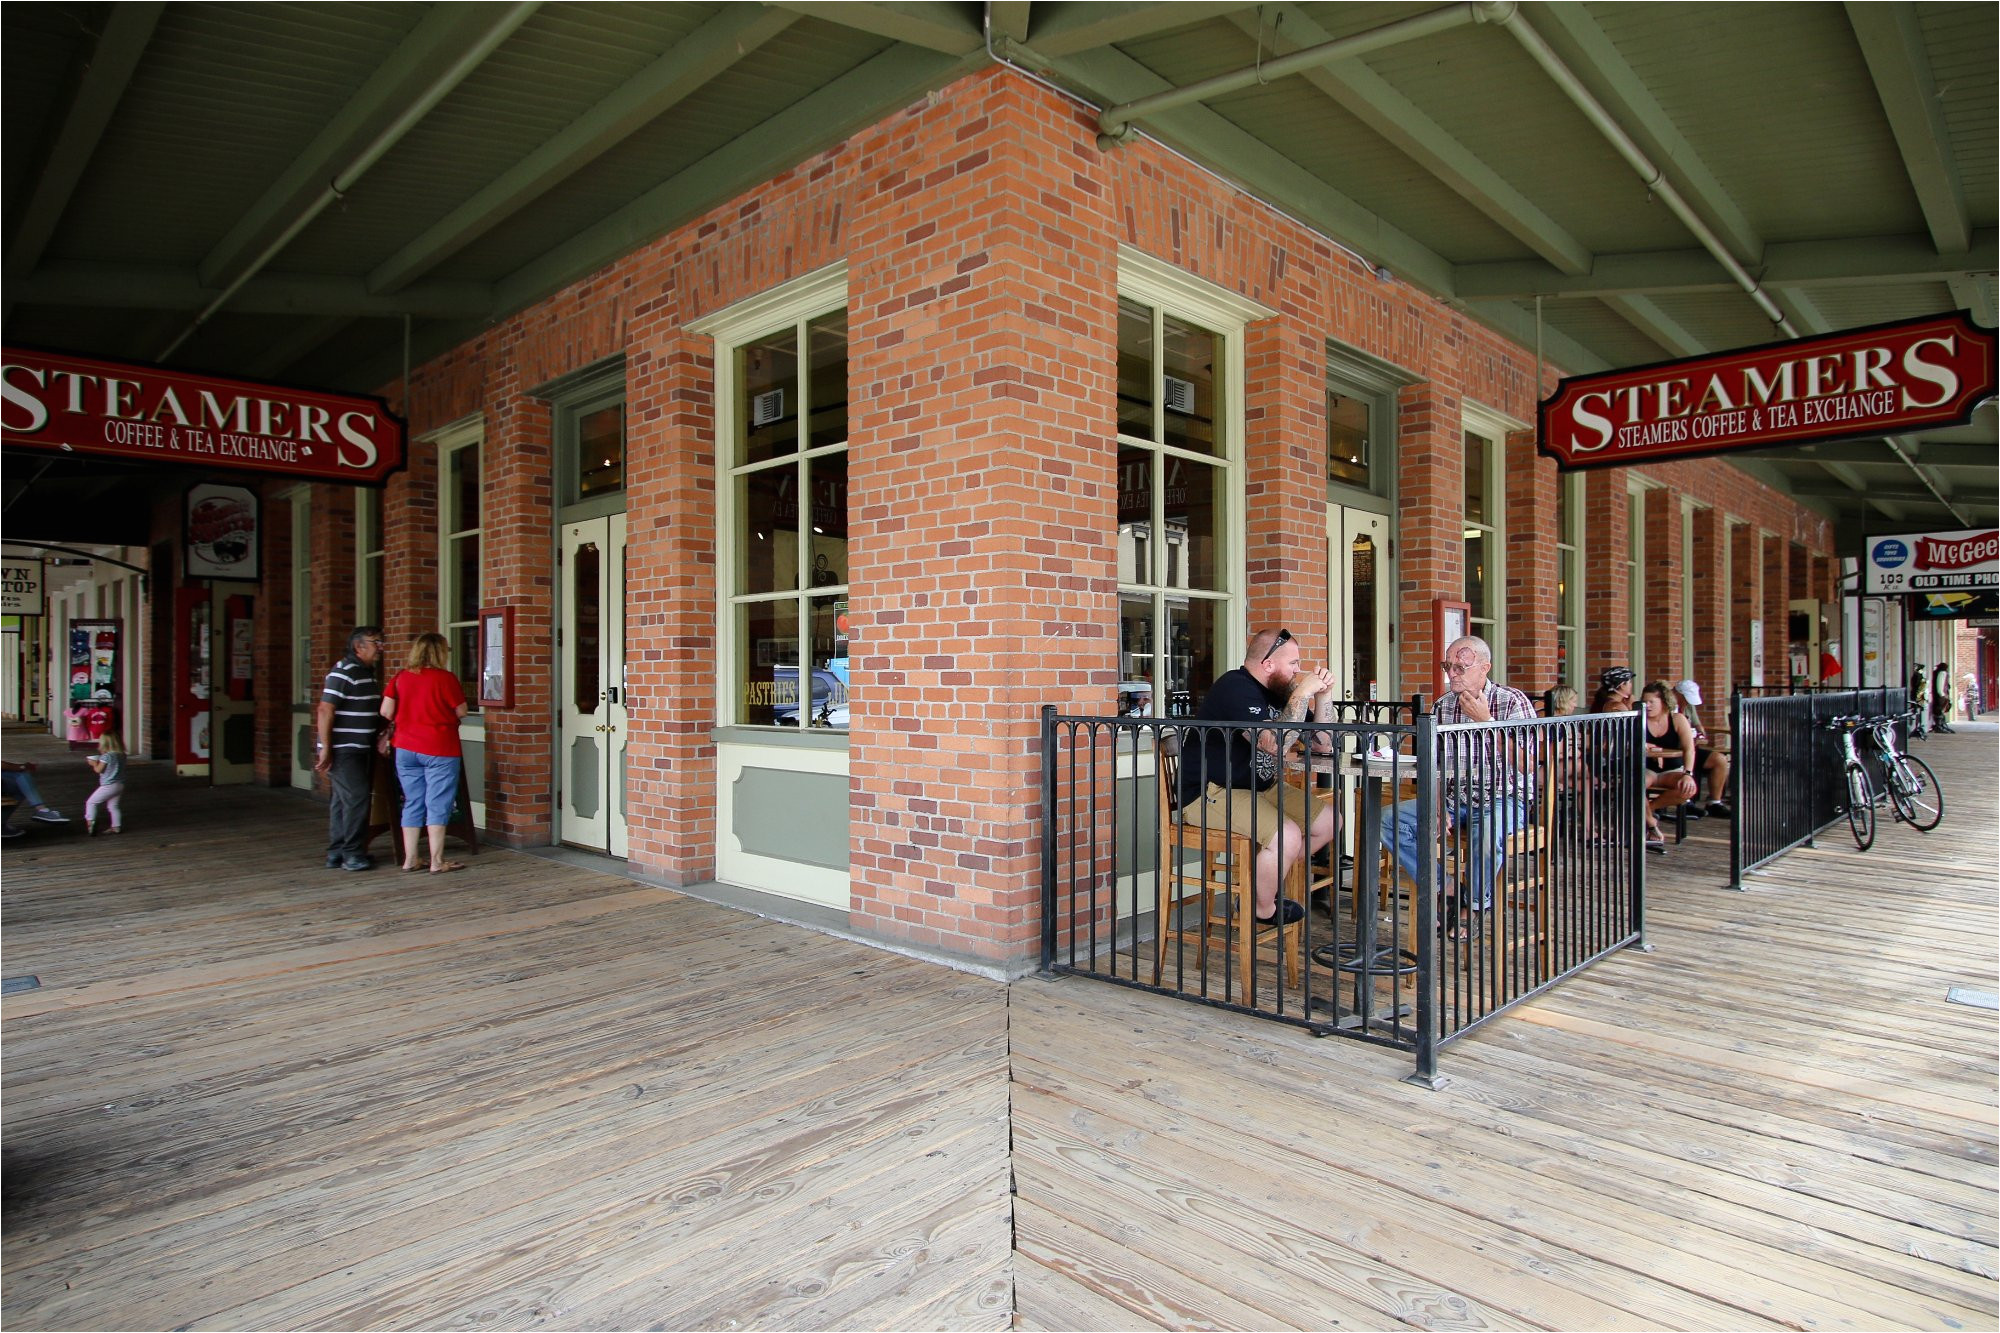 steamers bakery cafe